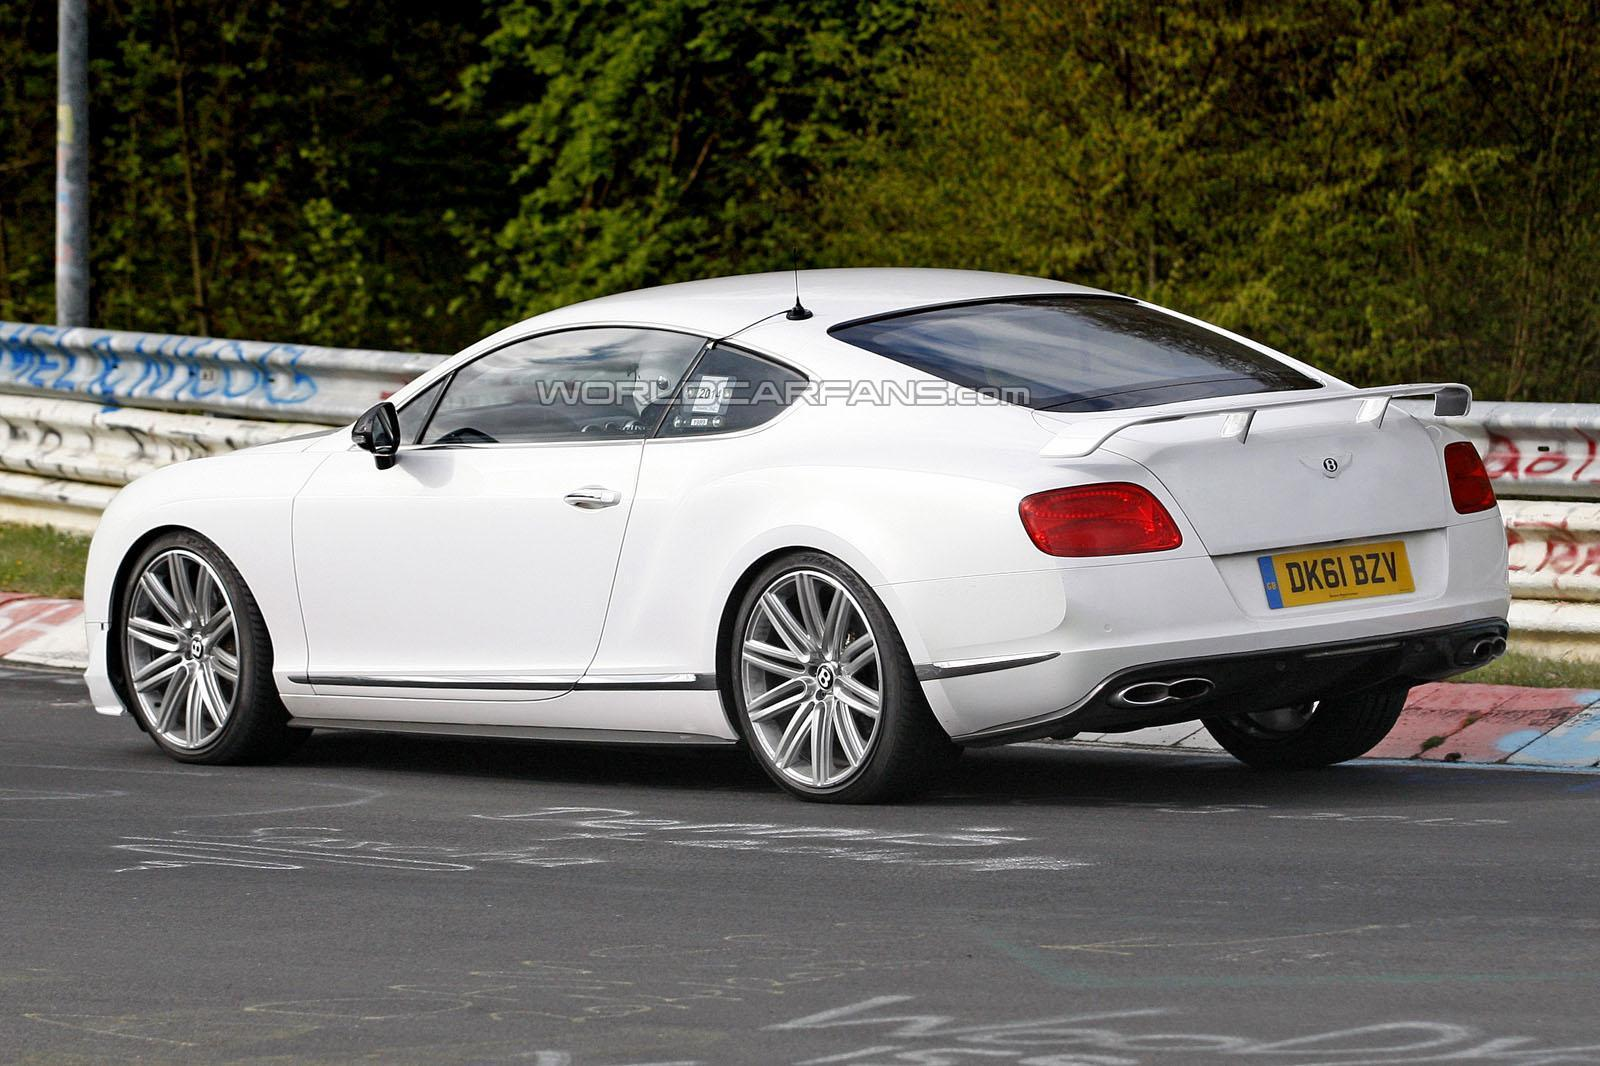 2019 Bentley Continental GT Prototype photo - 1